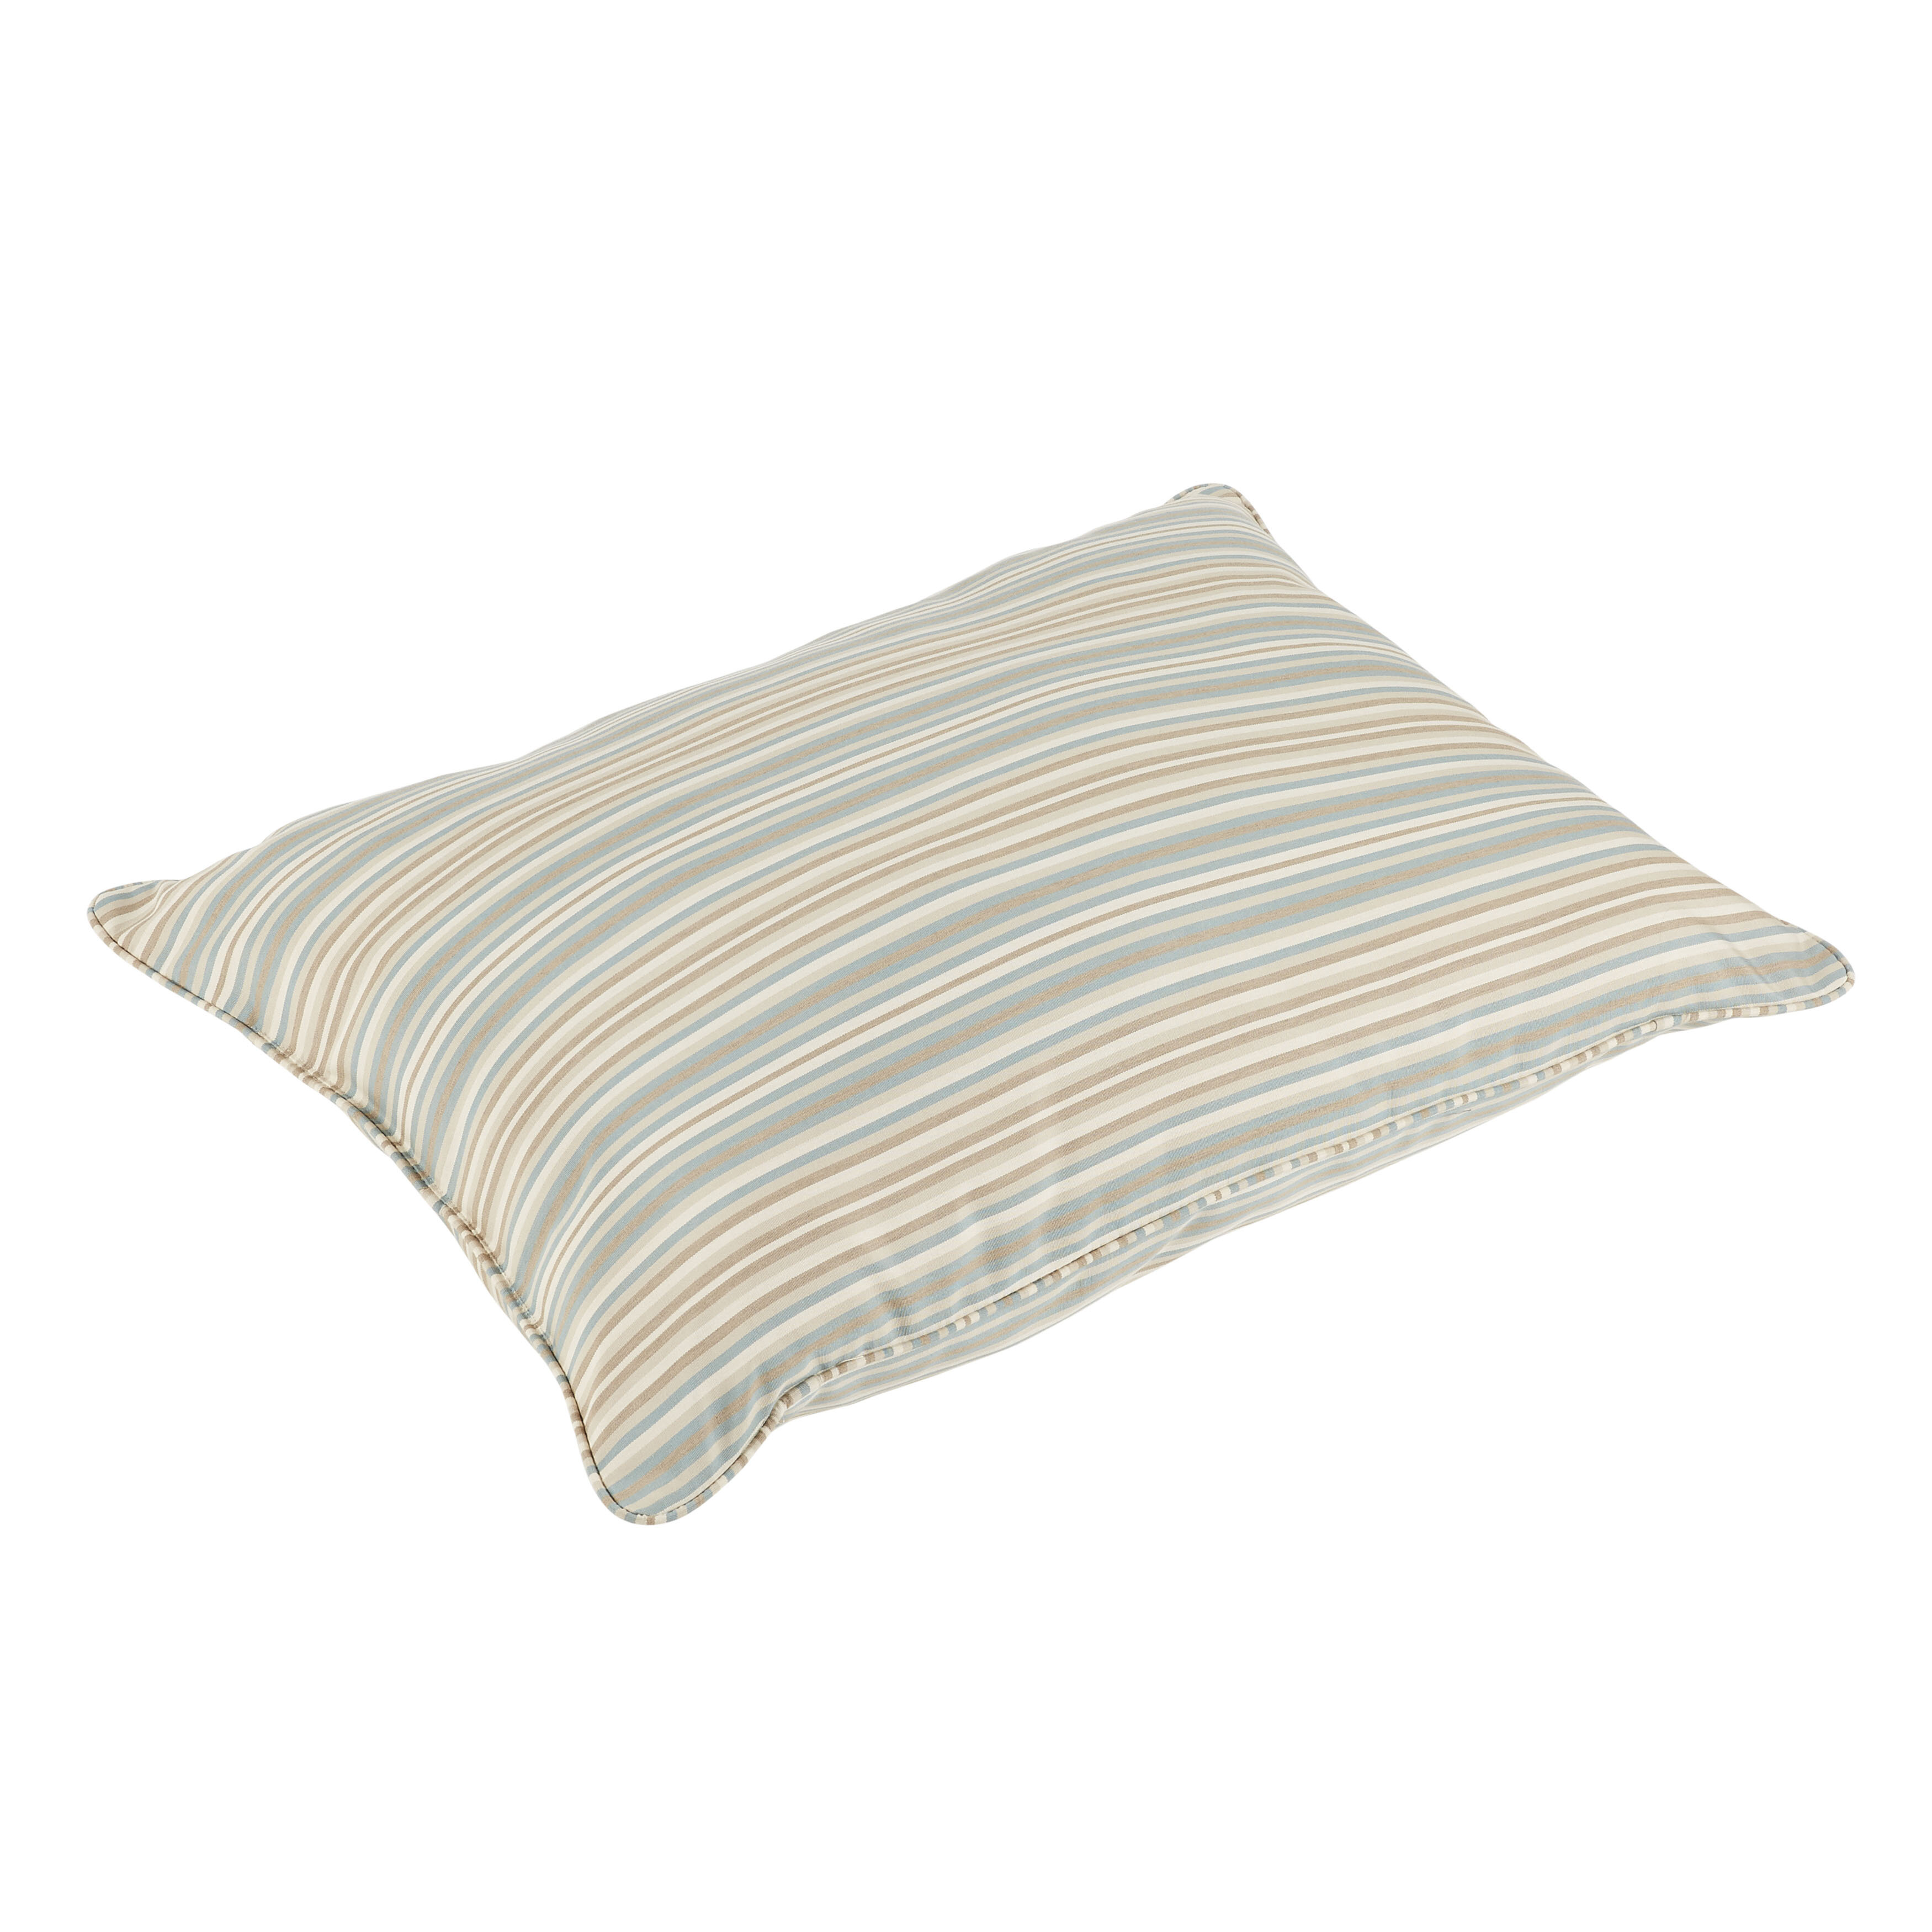 Floor Rectangular Throw Pillows You Ll Love In 2021 Wayfair